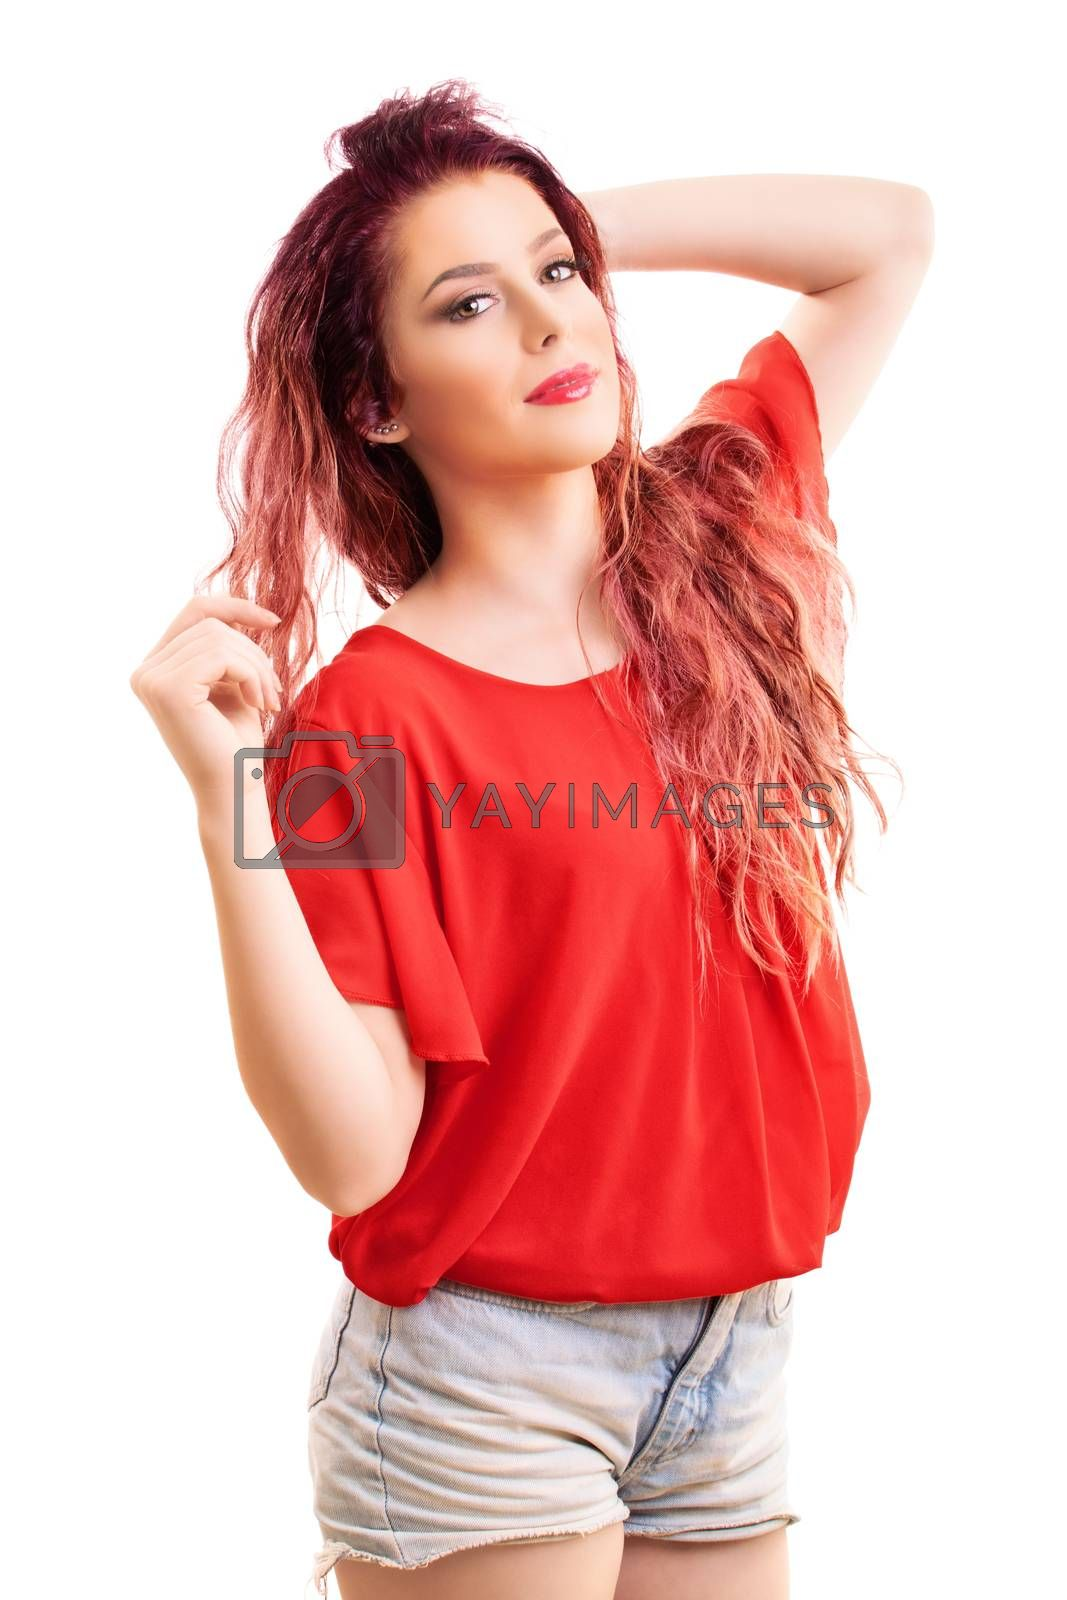 Beauty portrait of a beautiful young redhead girl playing with her hair, isolated on white background.